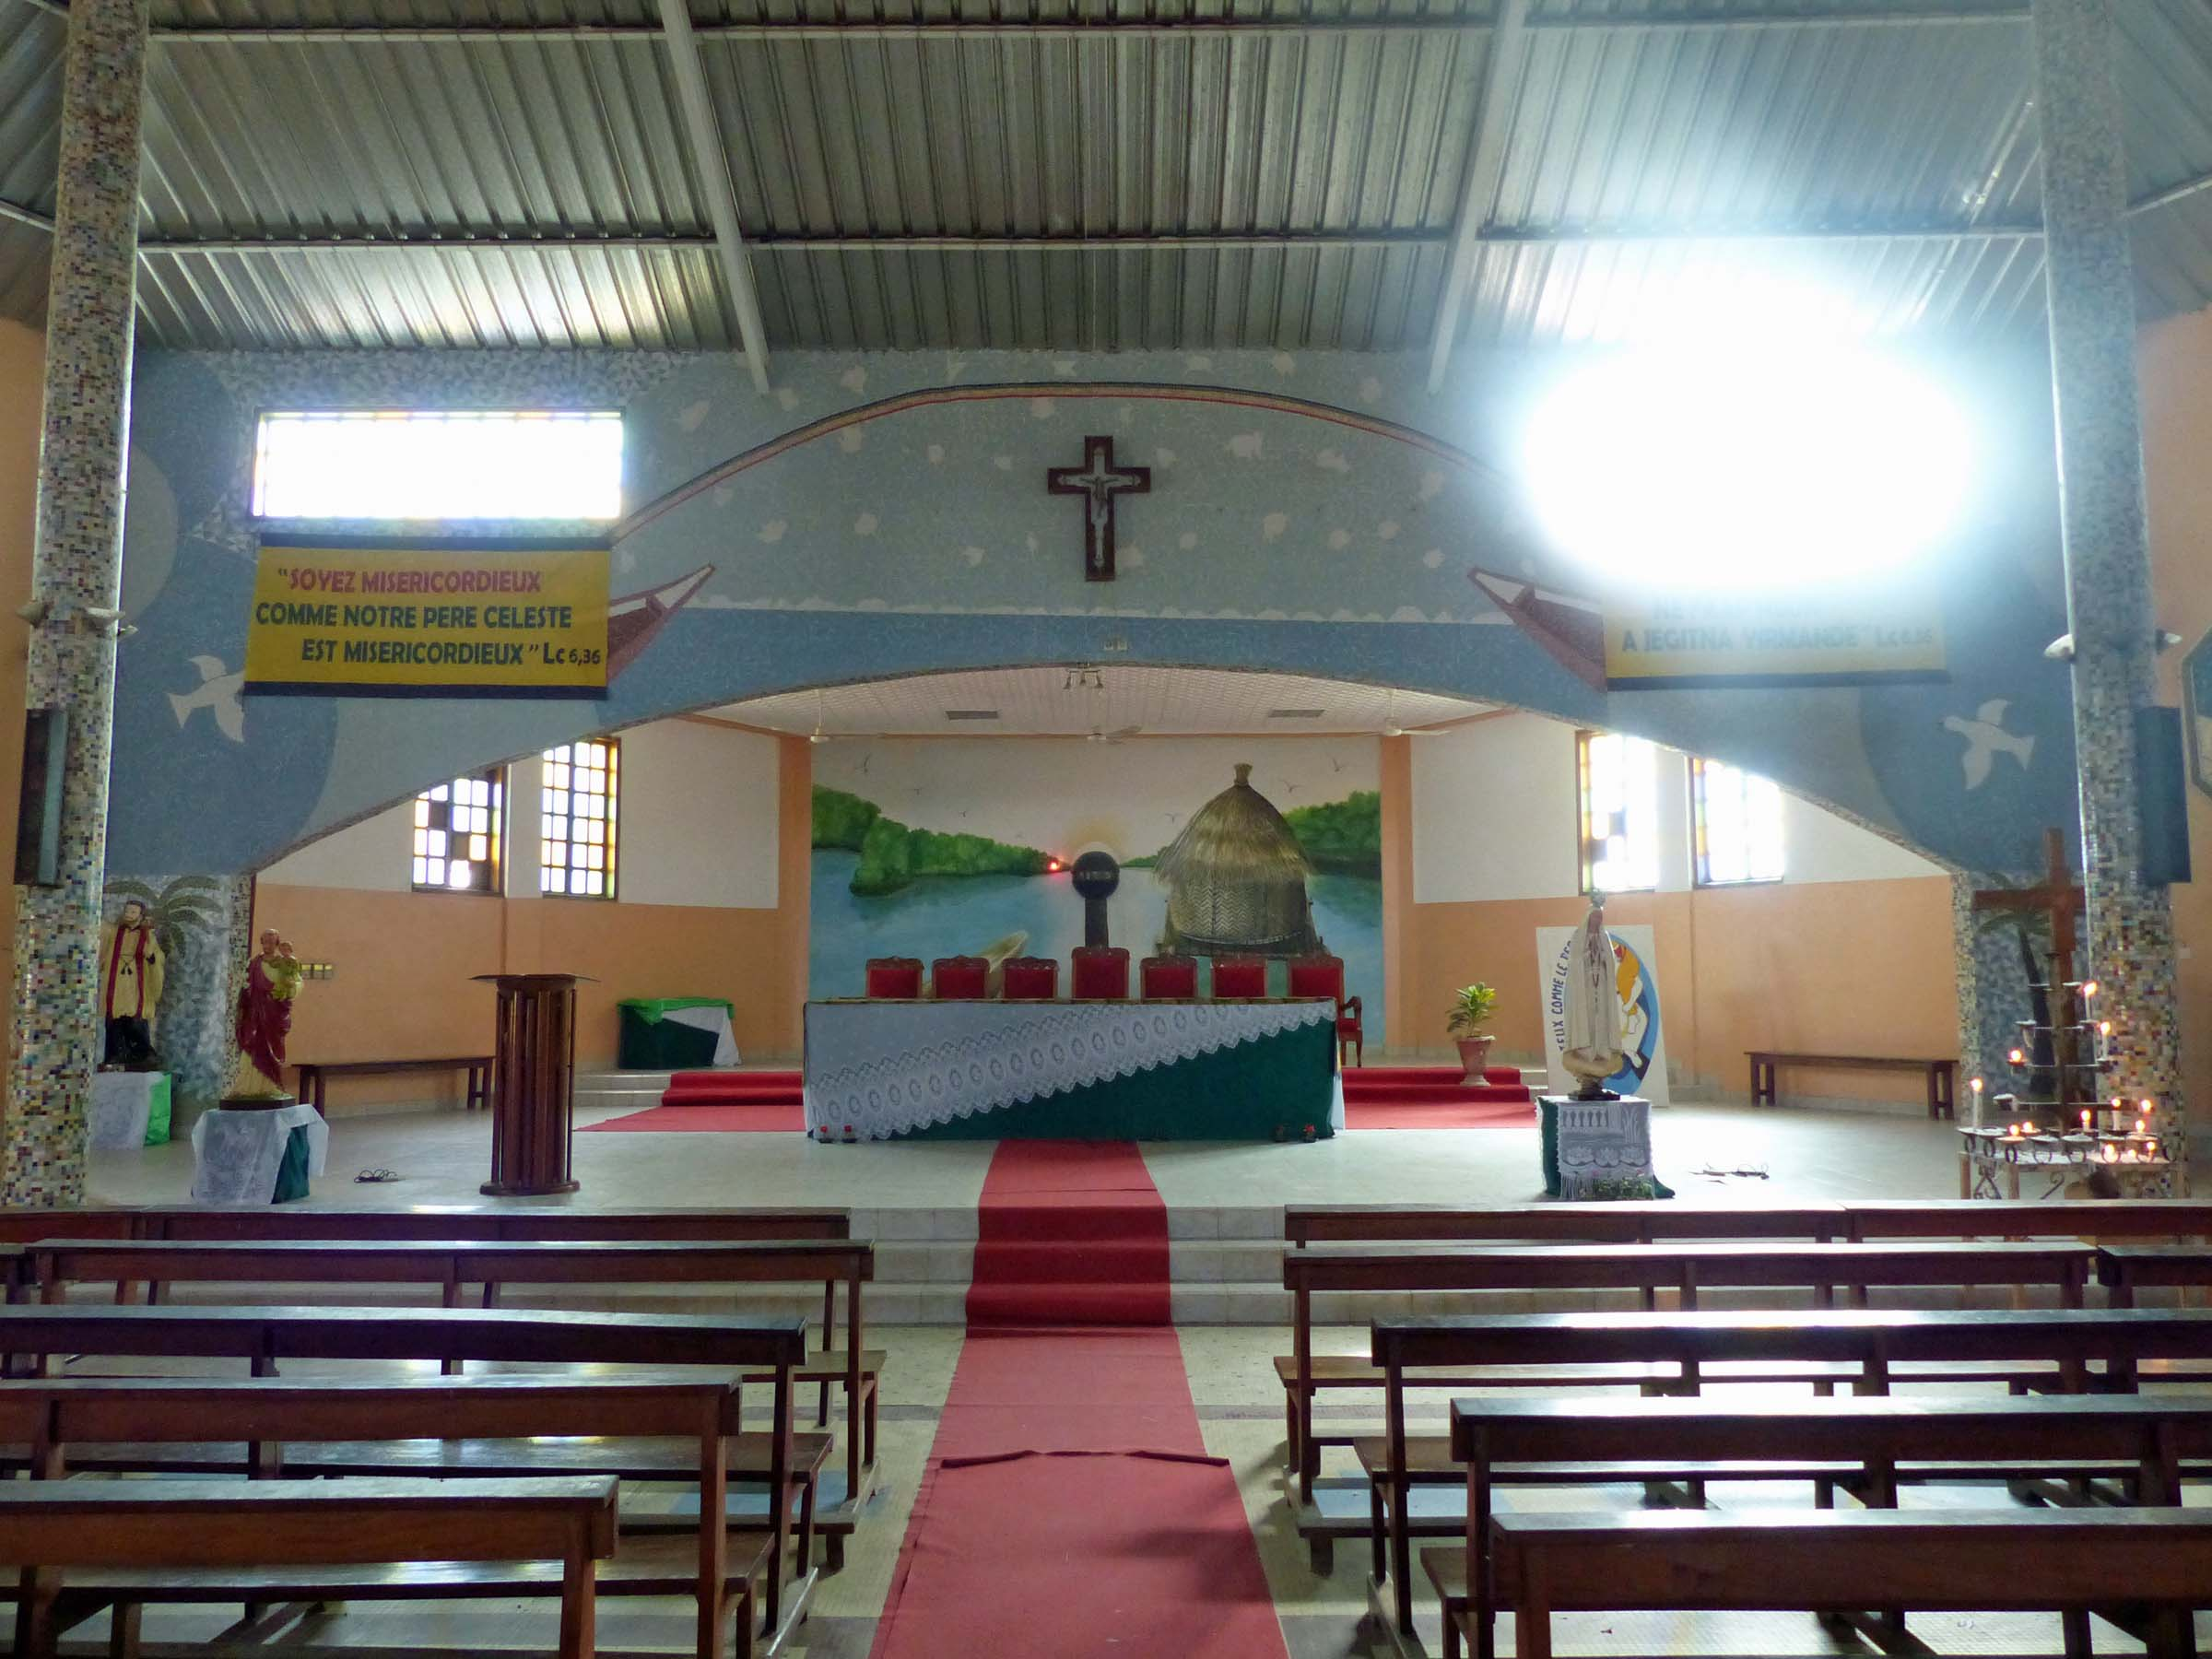 Simple church interior with tin roof